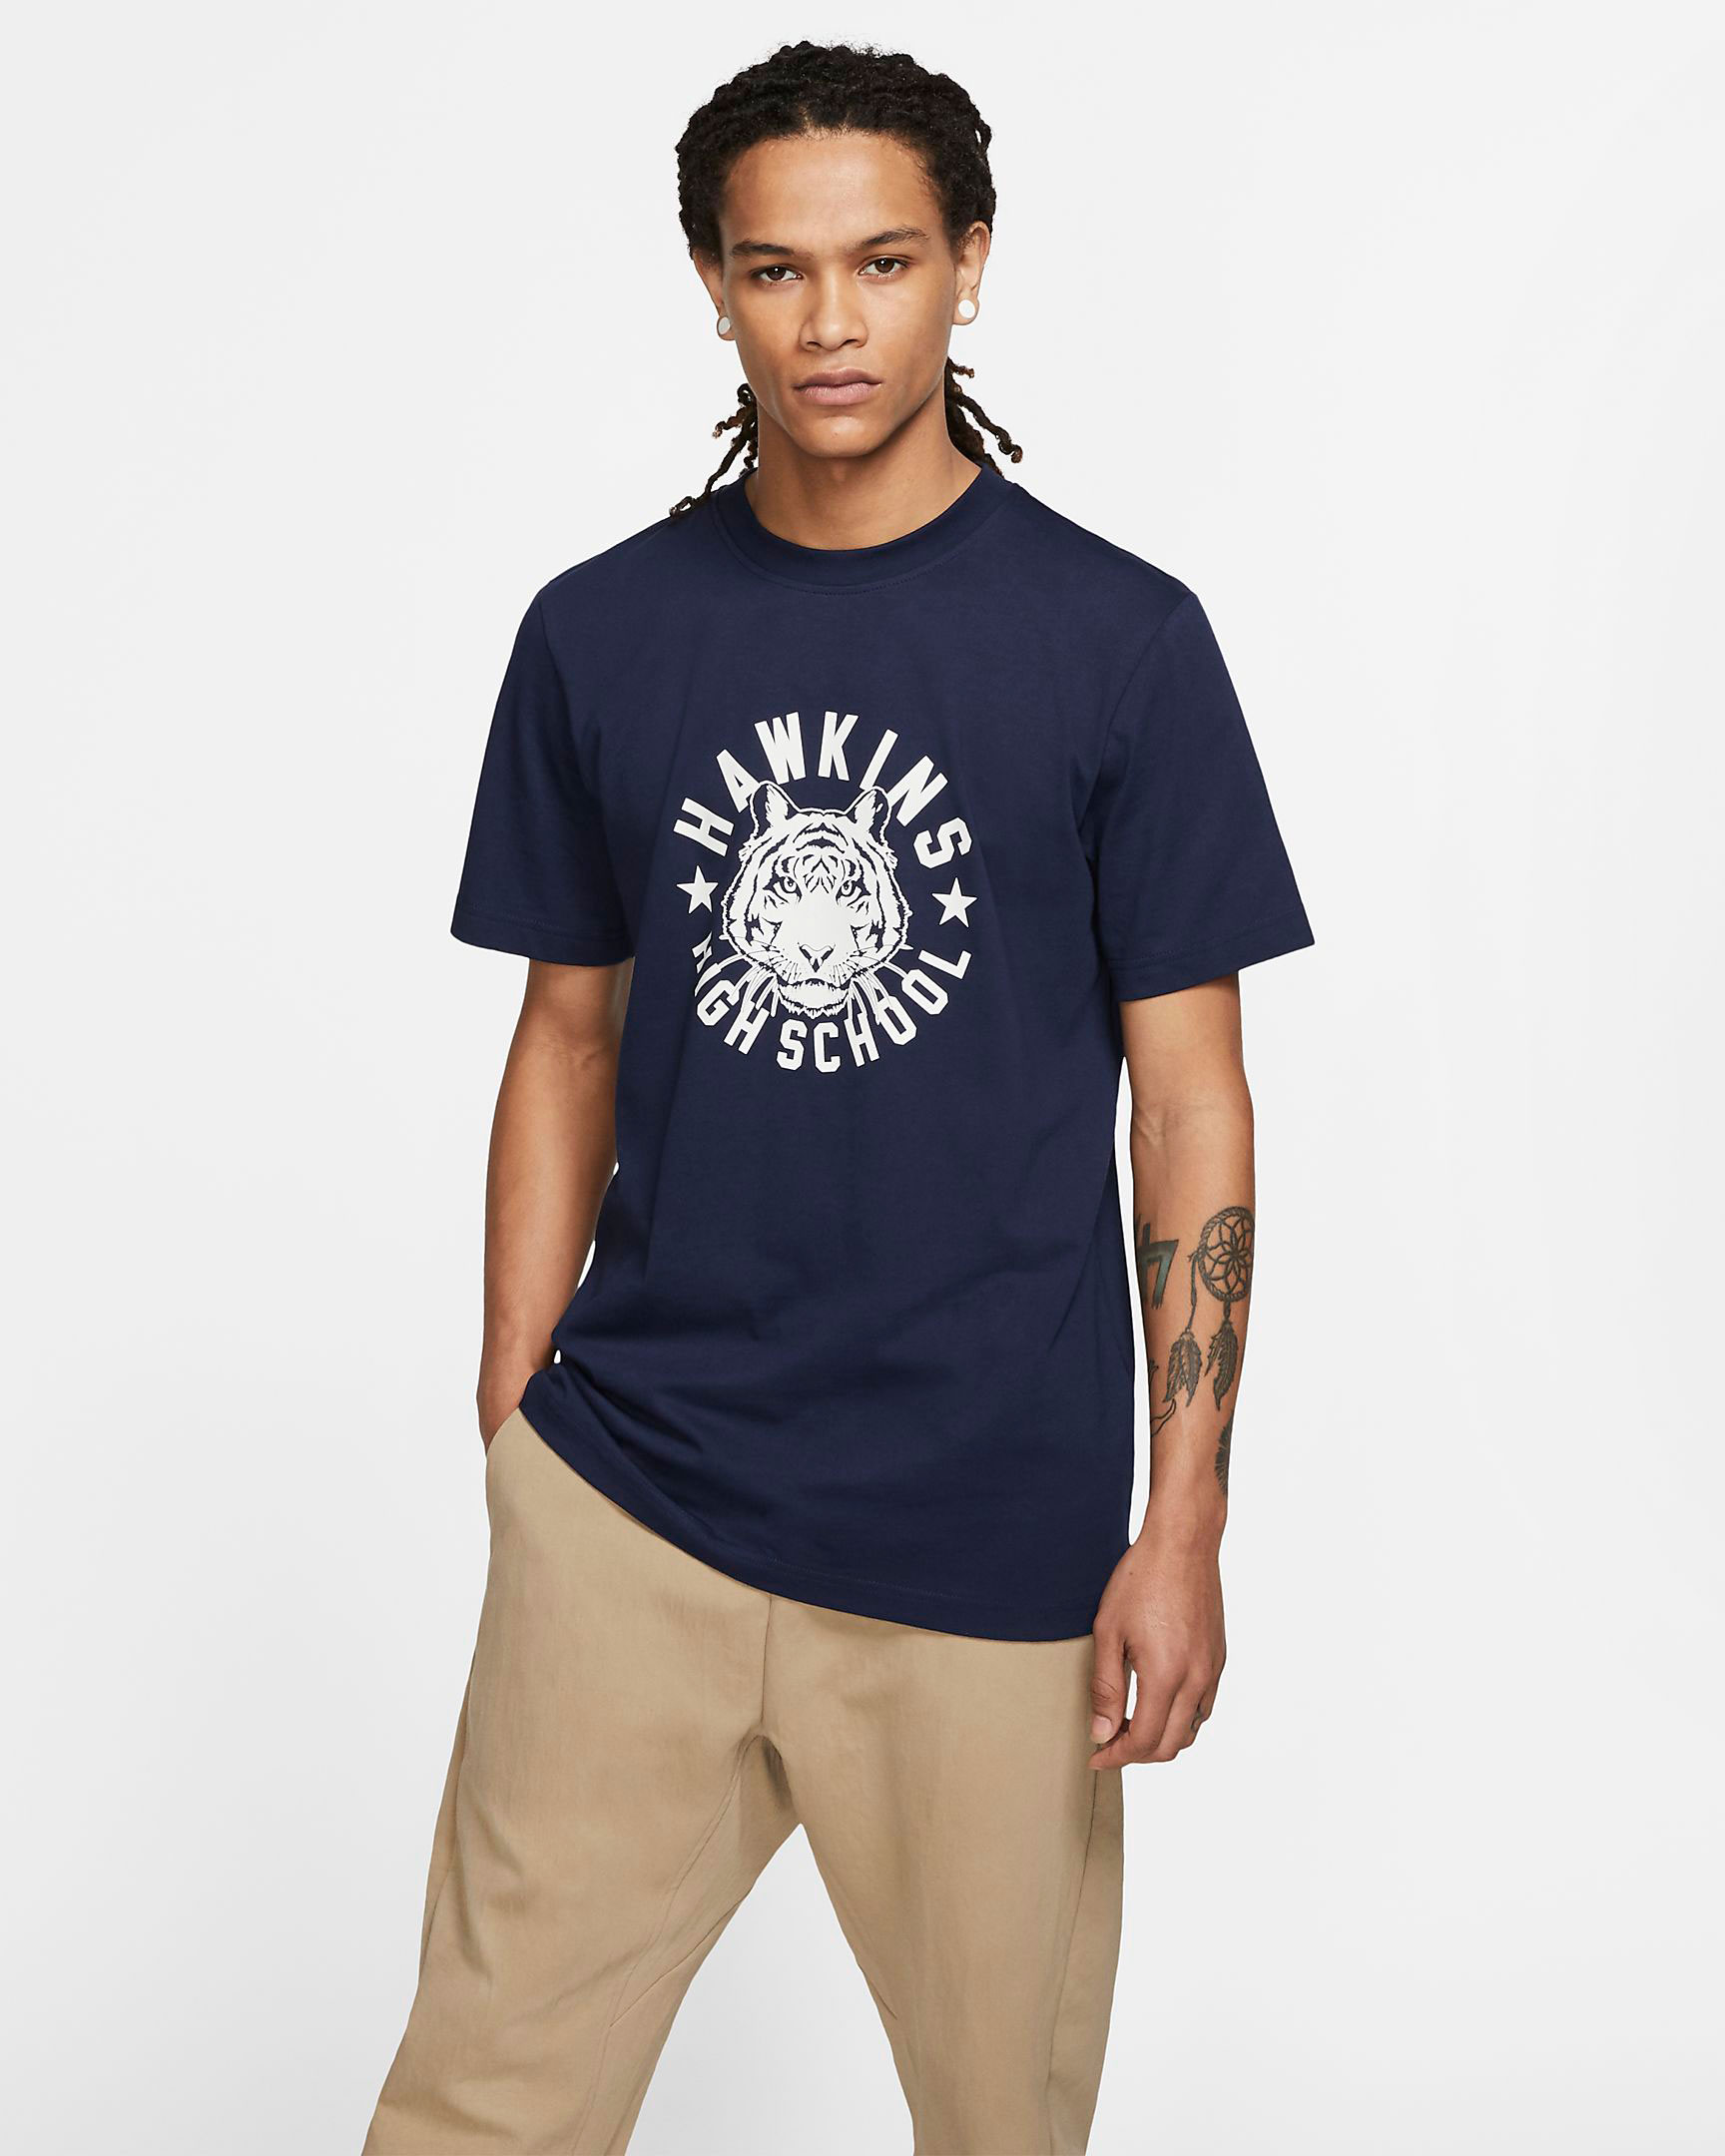 nike-stranger-things-og-4th-july-navy-shirt-1